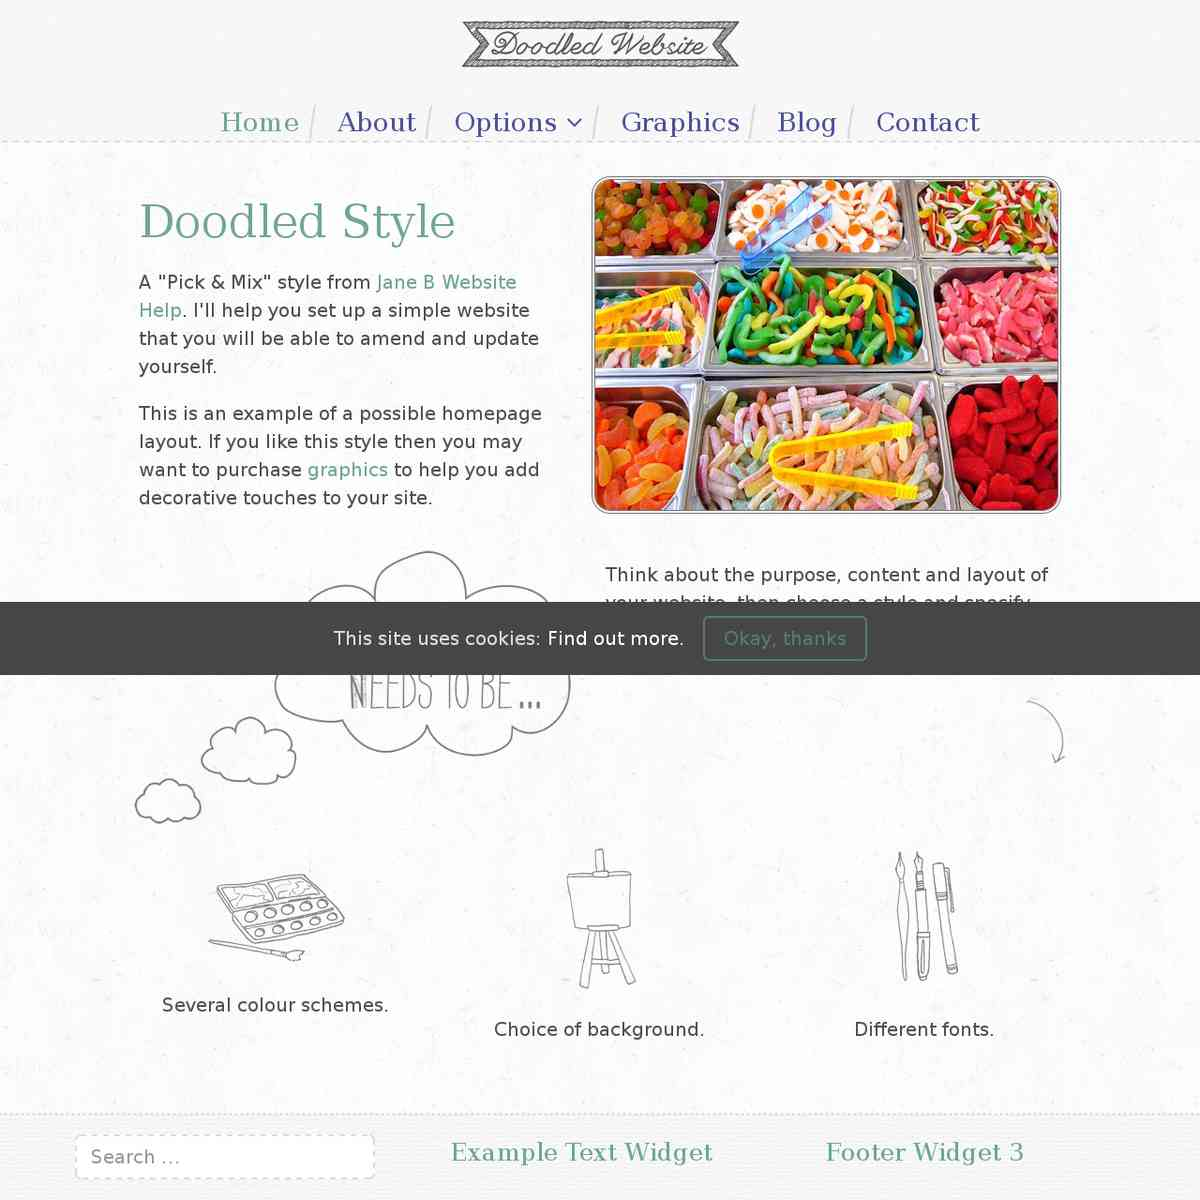 My demo site for the Doodled style